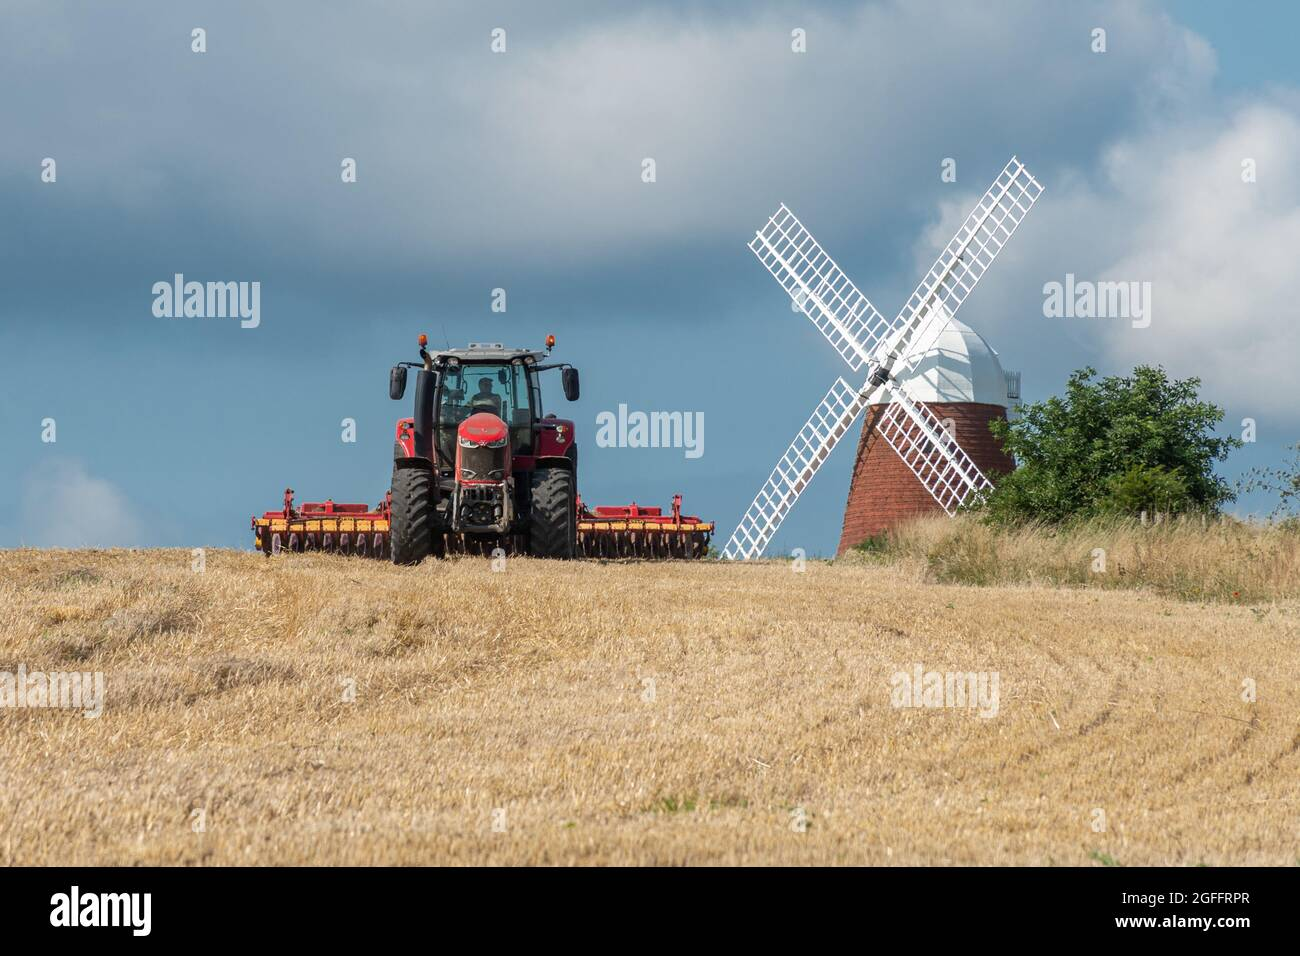 halnaker-windmill-in-the-south-downs-national-park-in-west-sussex-england-uk-with-a-red-tractor-working-in-the-cornfield-on-a-sunny-summer-day-2GFFRPR.jpg